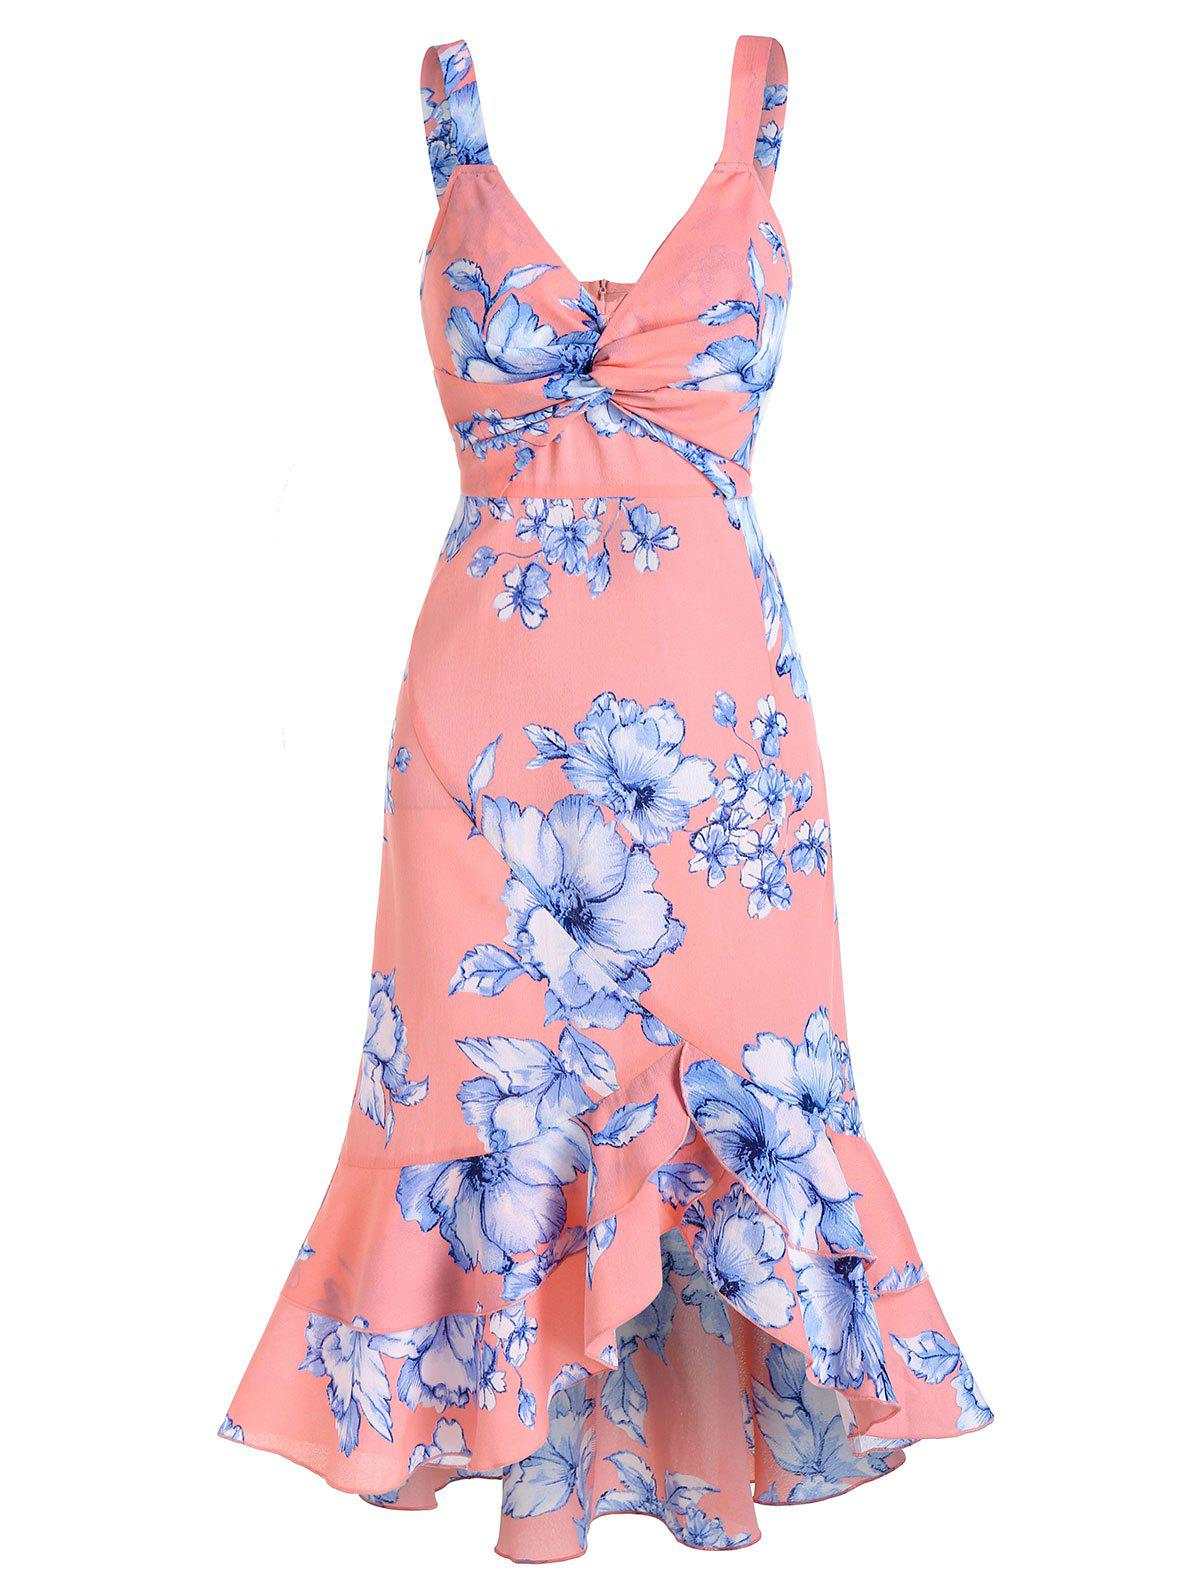 Twisted Floral Print Fishtail Dress - PINK M